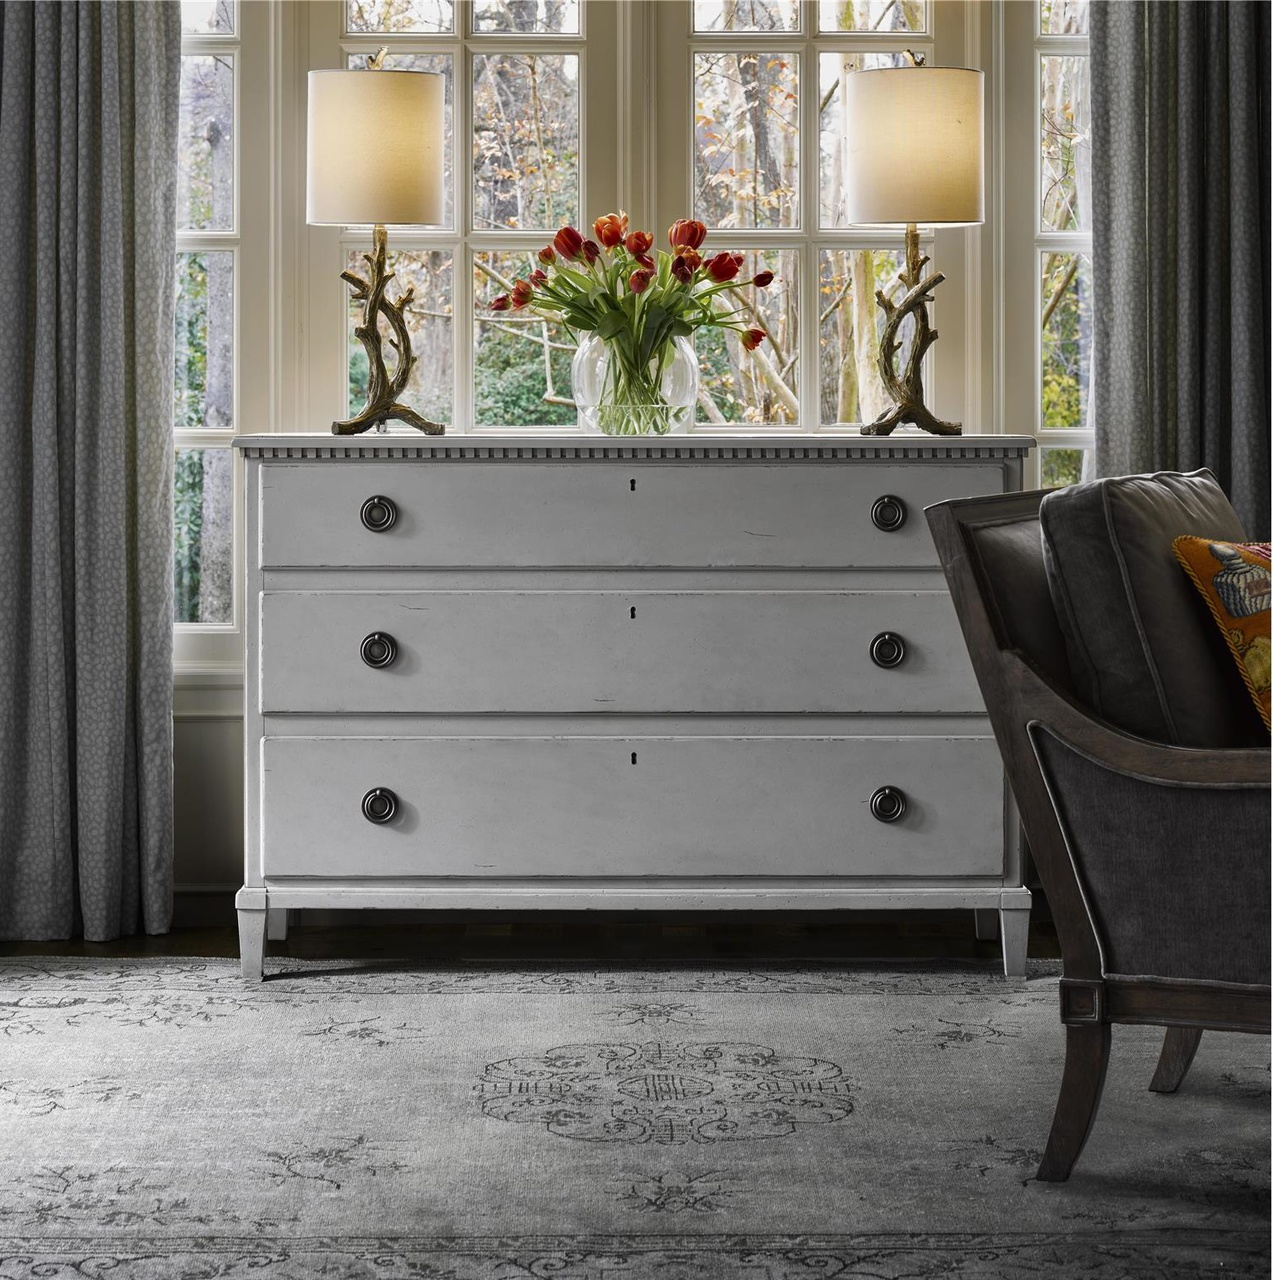 Universal Furniture Sojourn French Country 3 Drawer Dresser - Gray